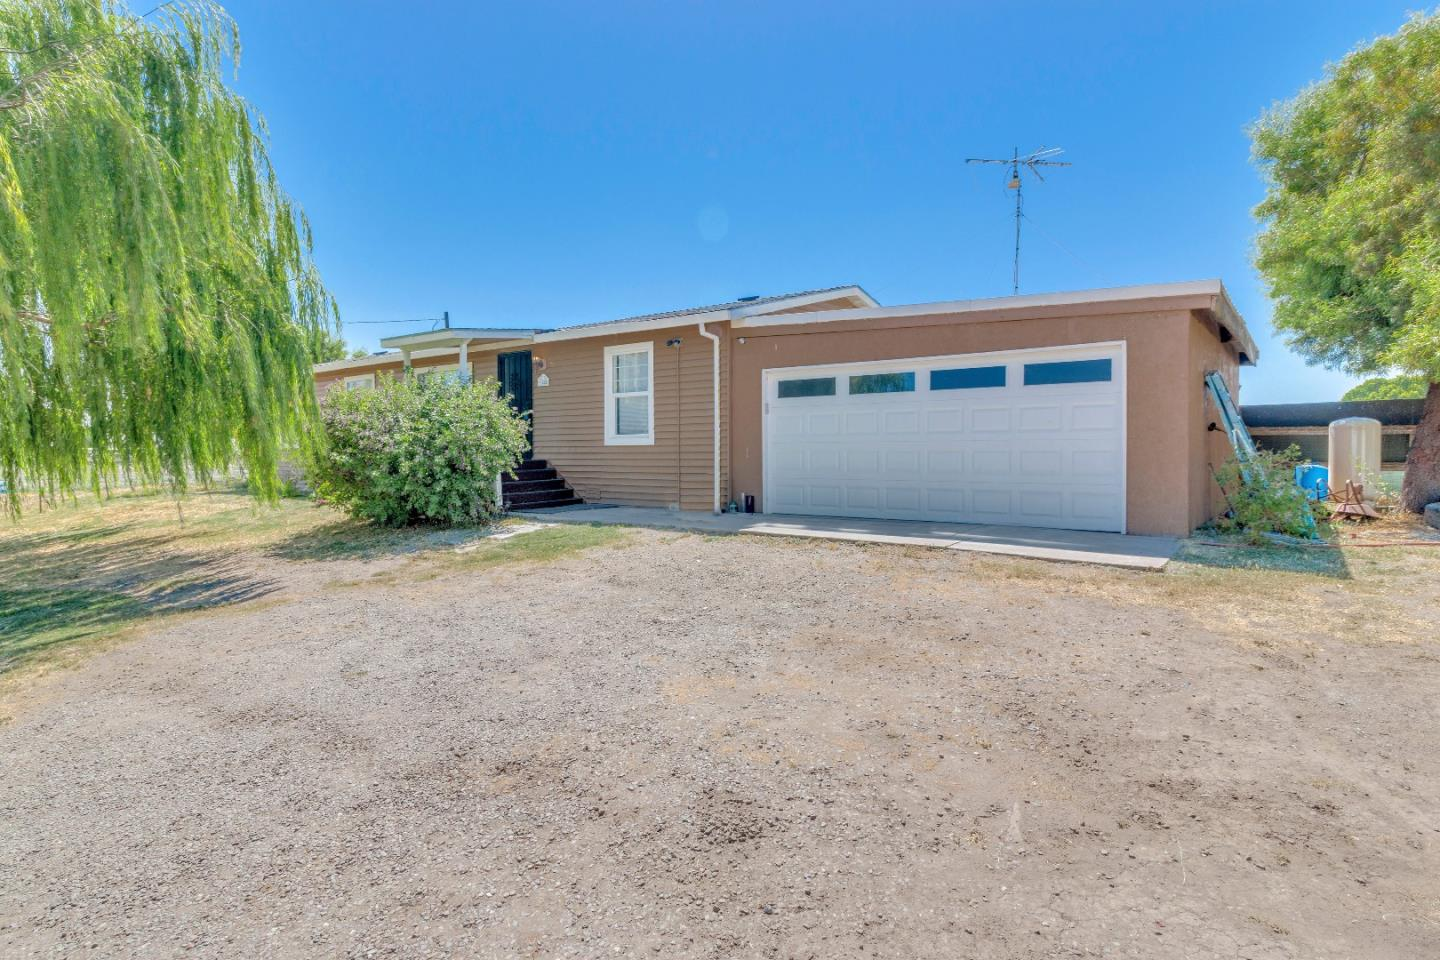 Detail Gallery Image 1 of 1 For 888 Critchett Rd, Tracy, CA, 95304 - 3 Beds | 2 Baths